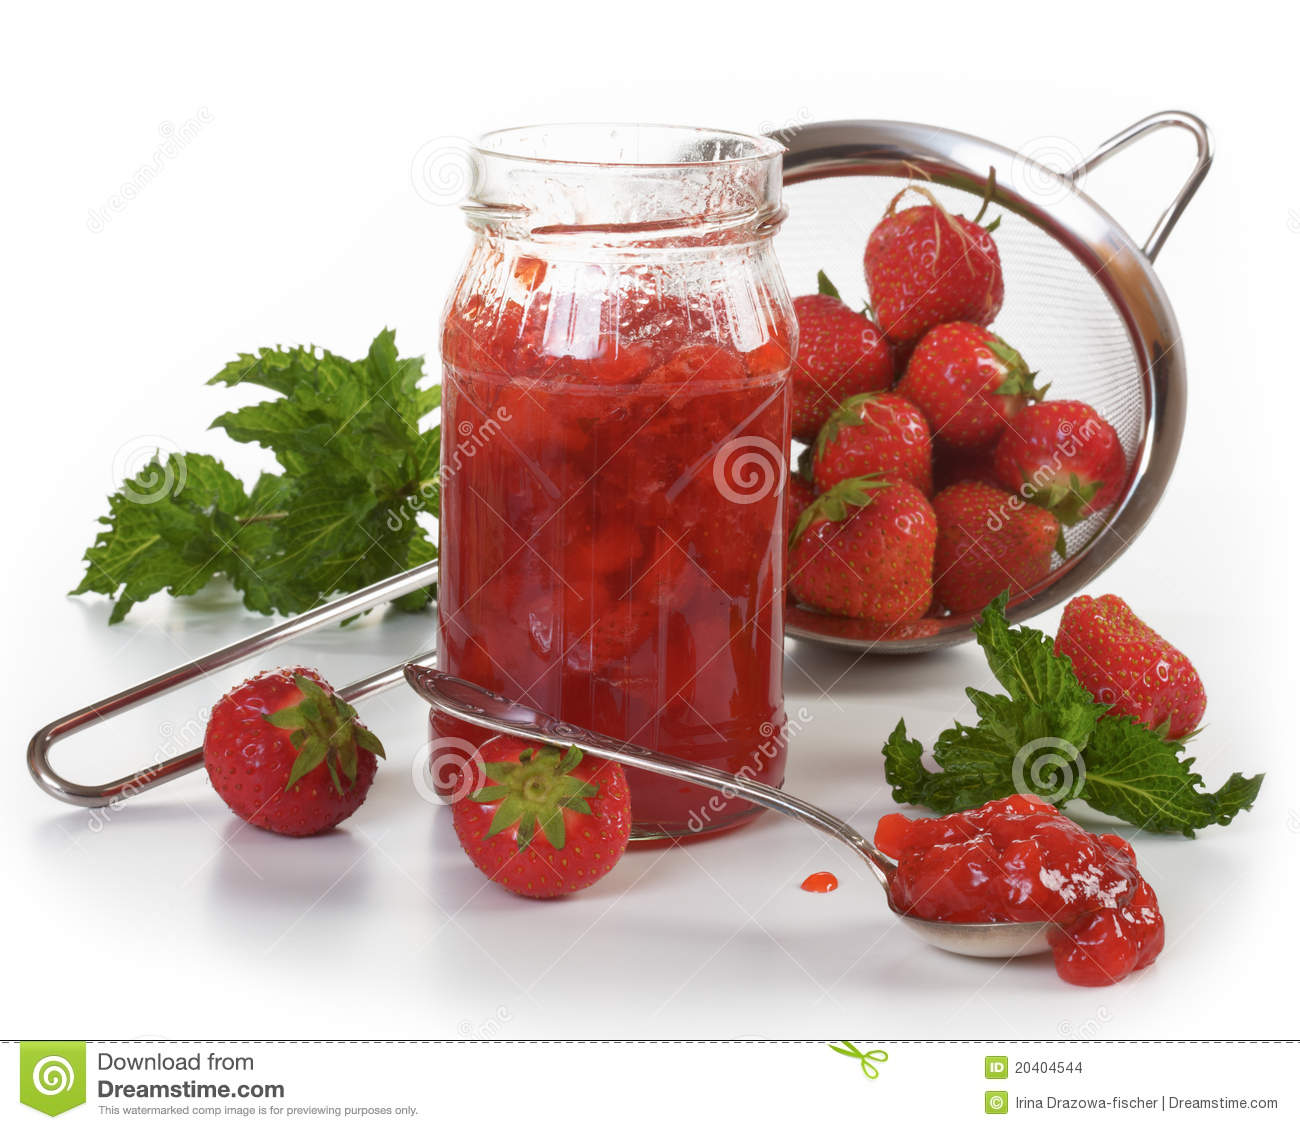 Jar of strawberry jam and fresh strawberries in a colander.